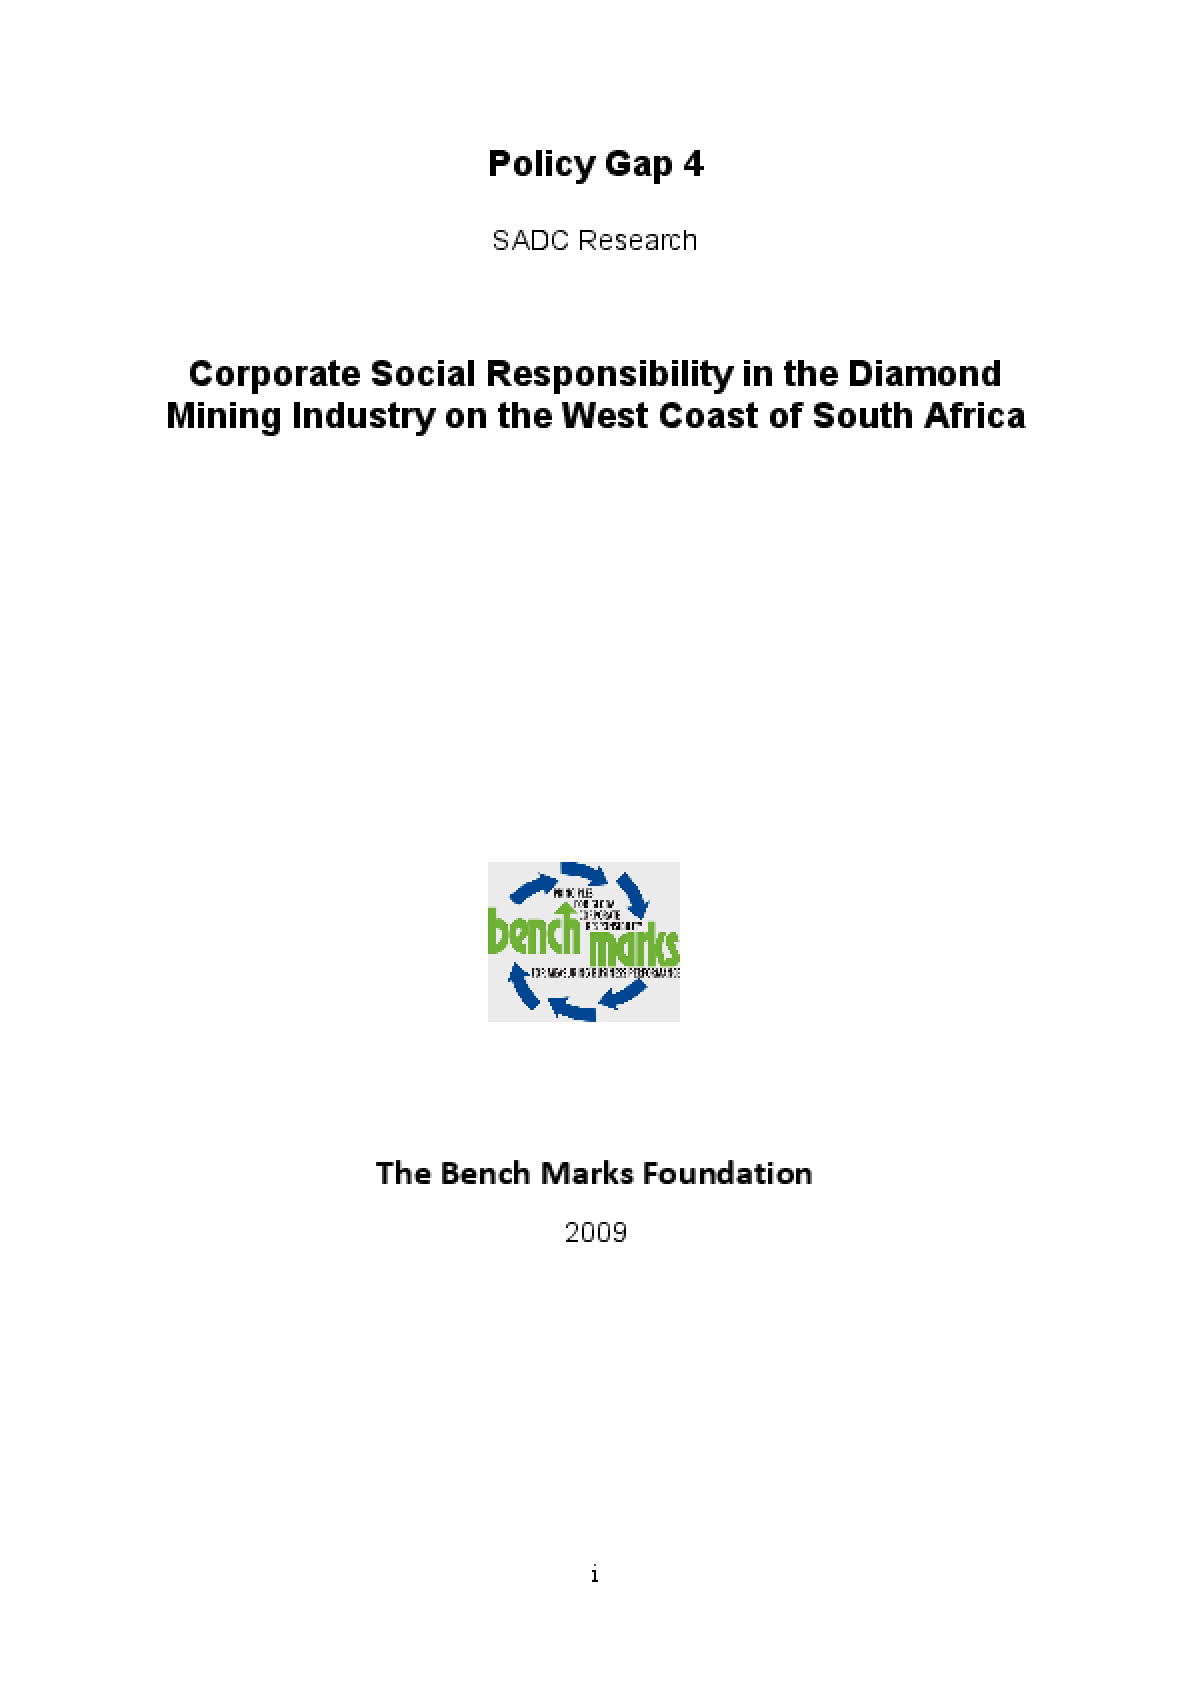 Corporate Social Responsibility in the Diamond Mining Industry on the West Coast of South Africa